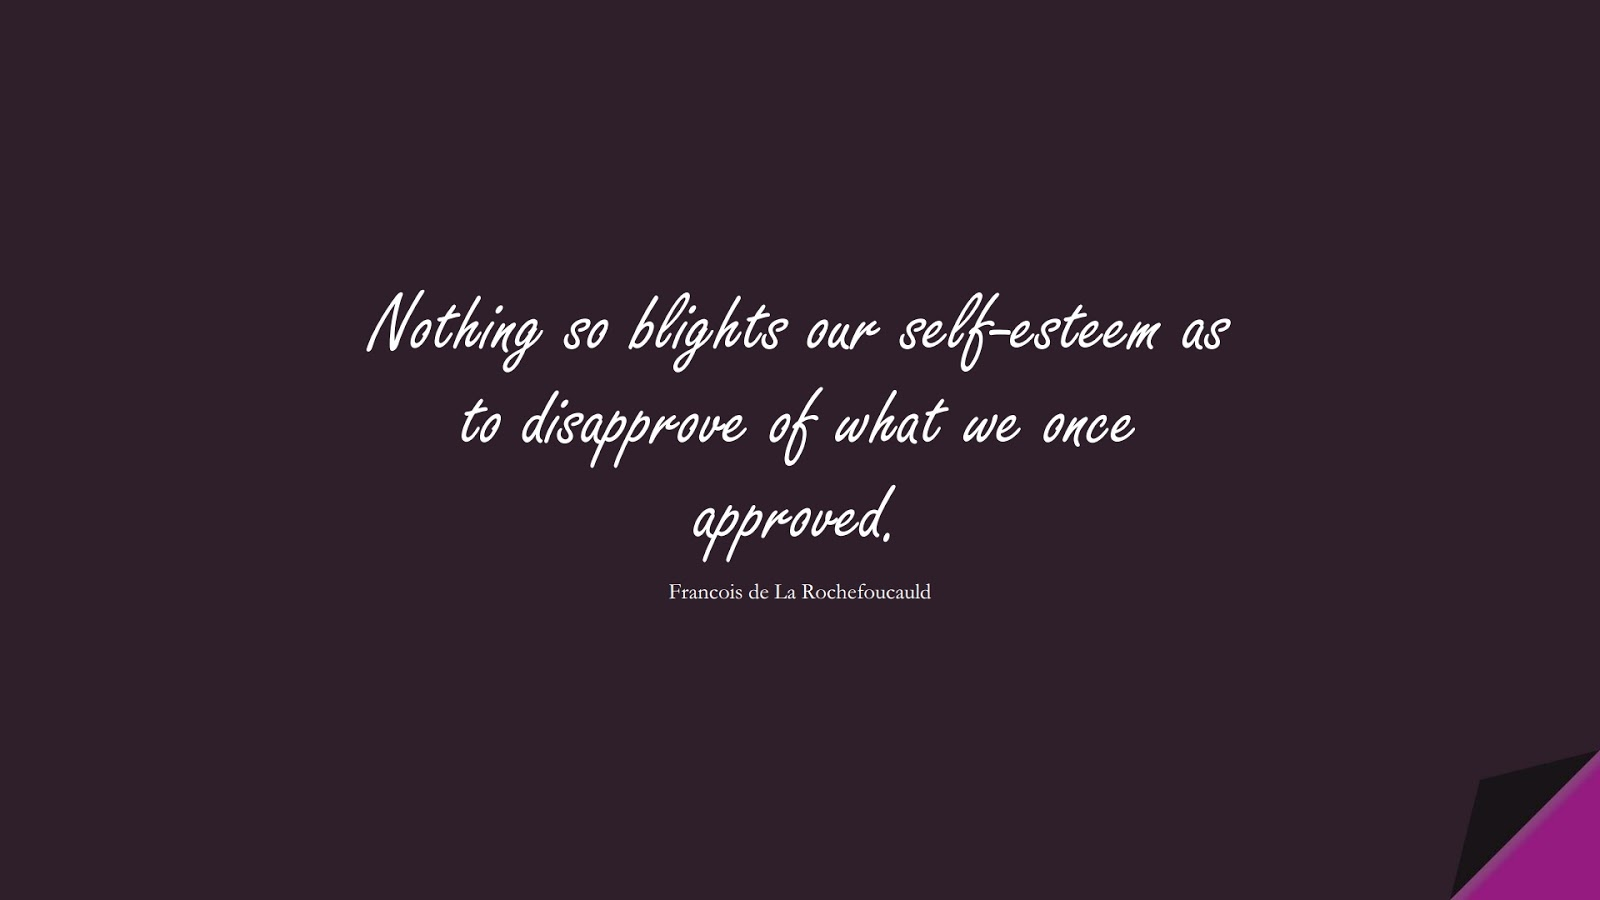 Nothing so blights our self-esteem as to disapprove of what we once approved. (Francois de La Rochefoucauld);  #SelfEsteemQuotes